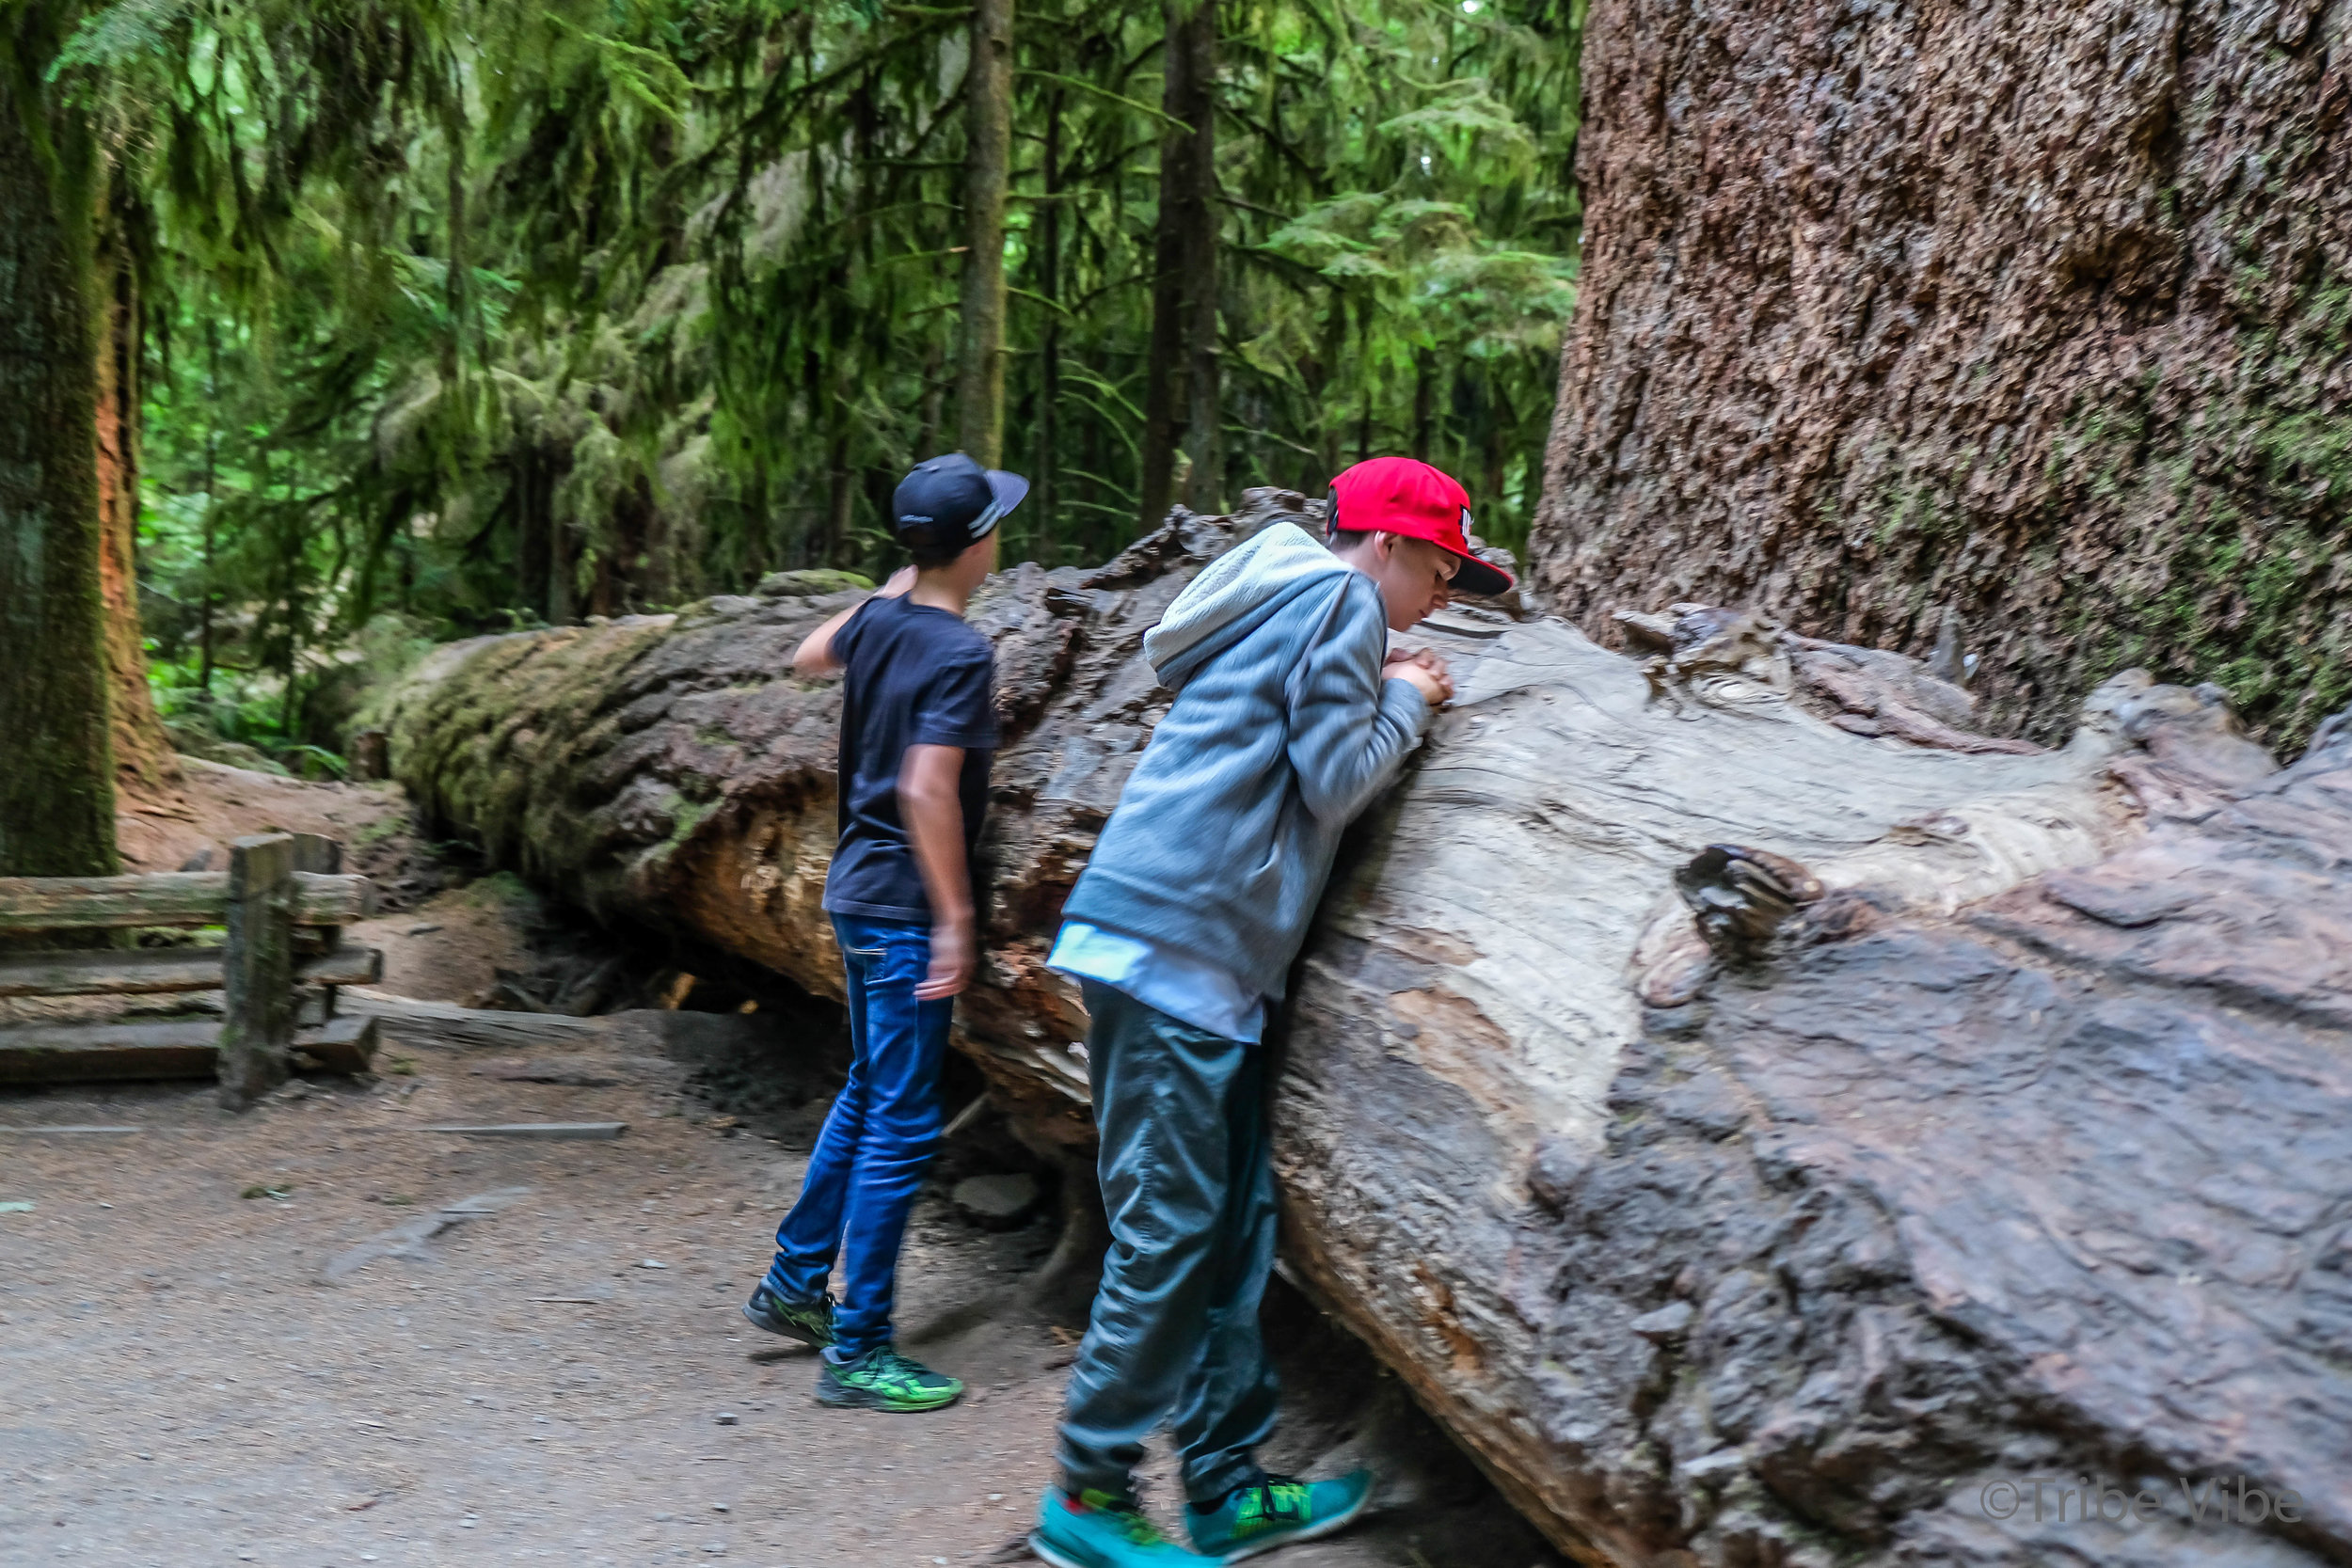 cathedral grove21.jpg